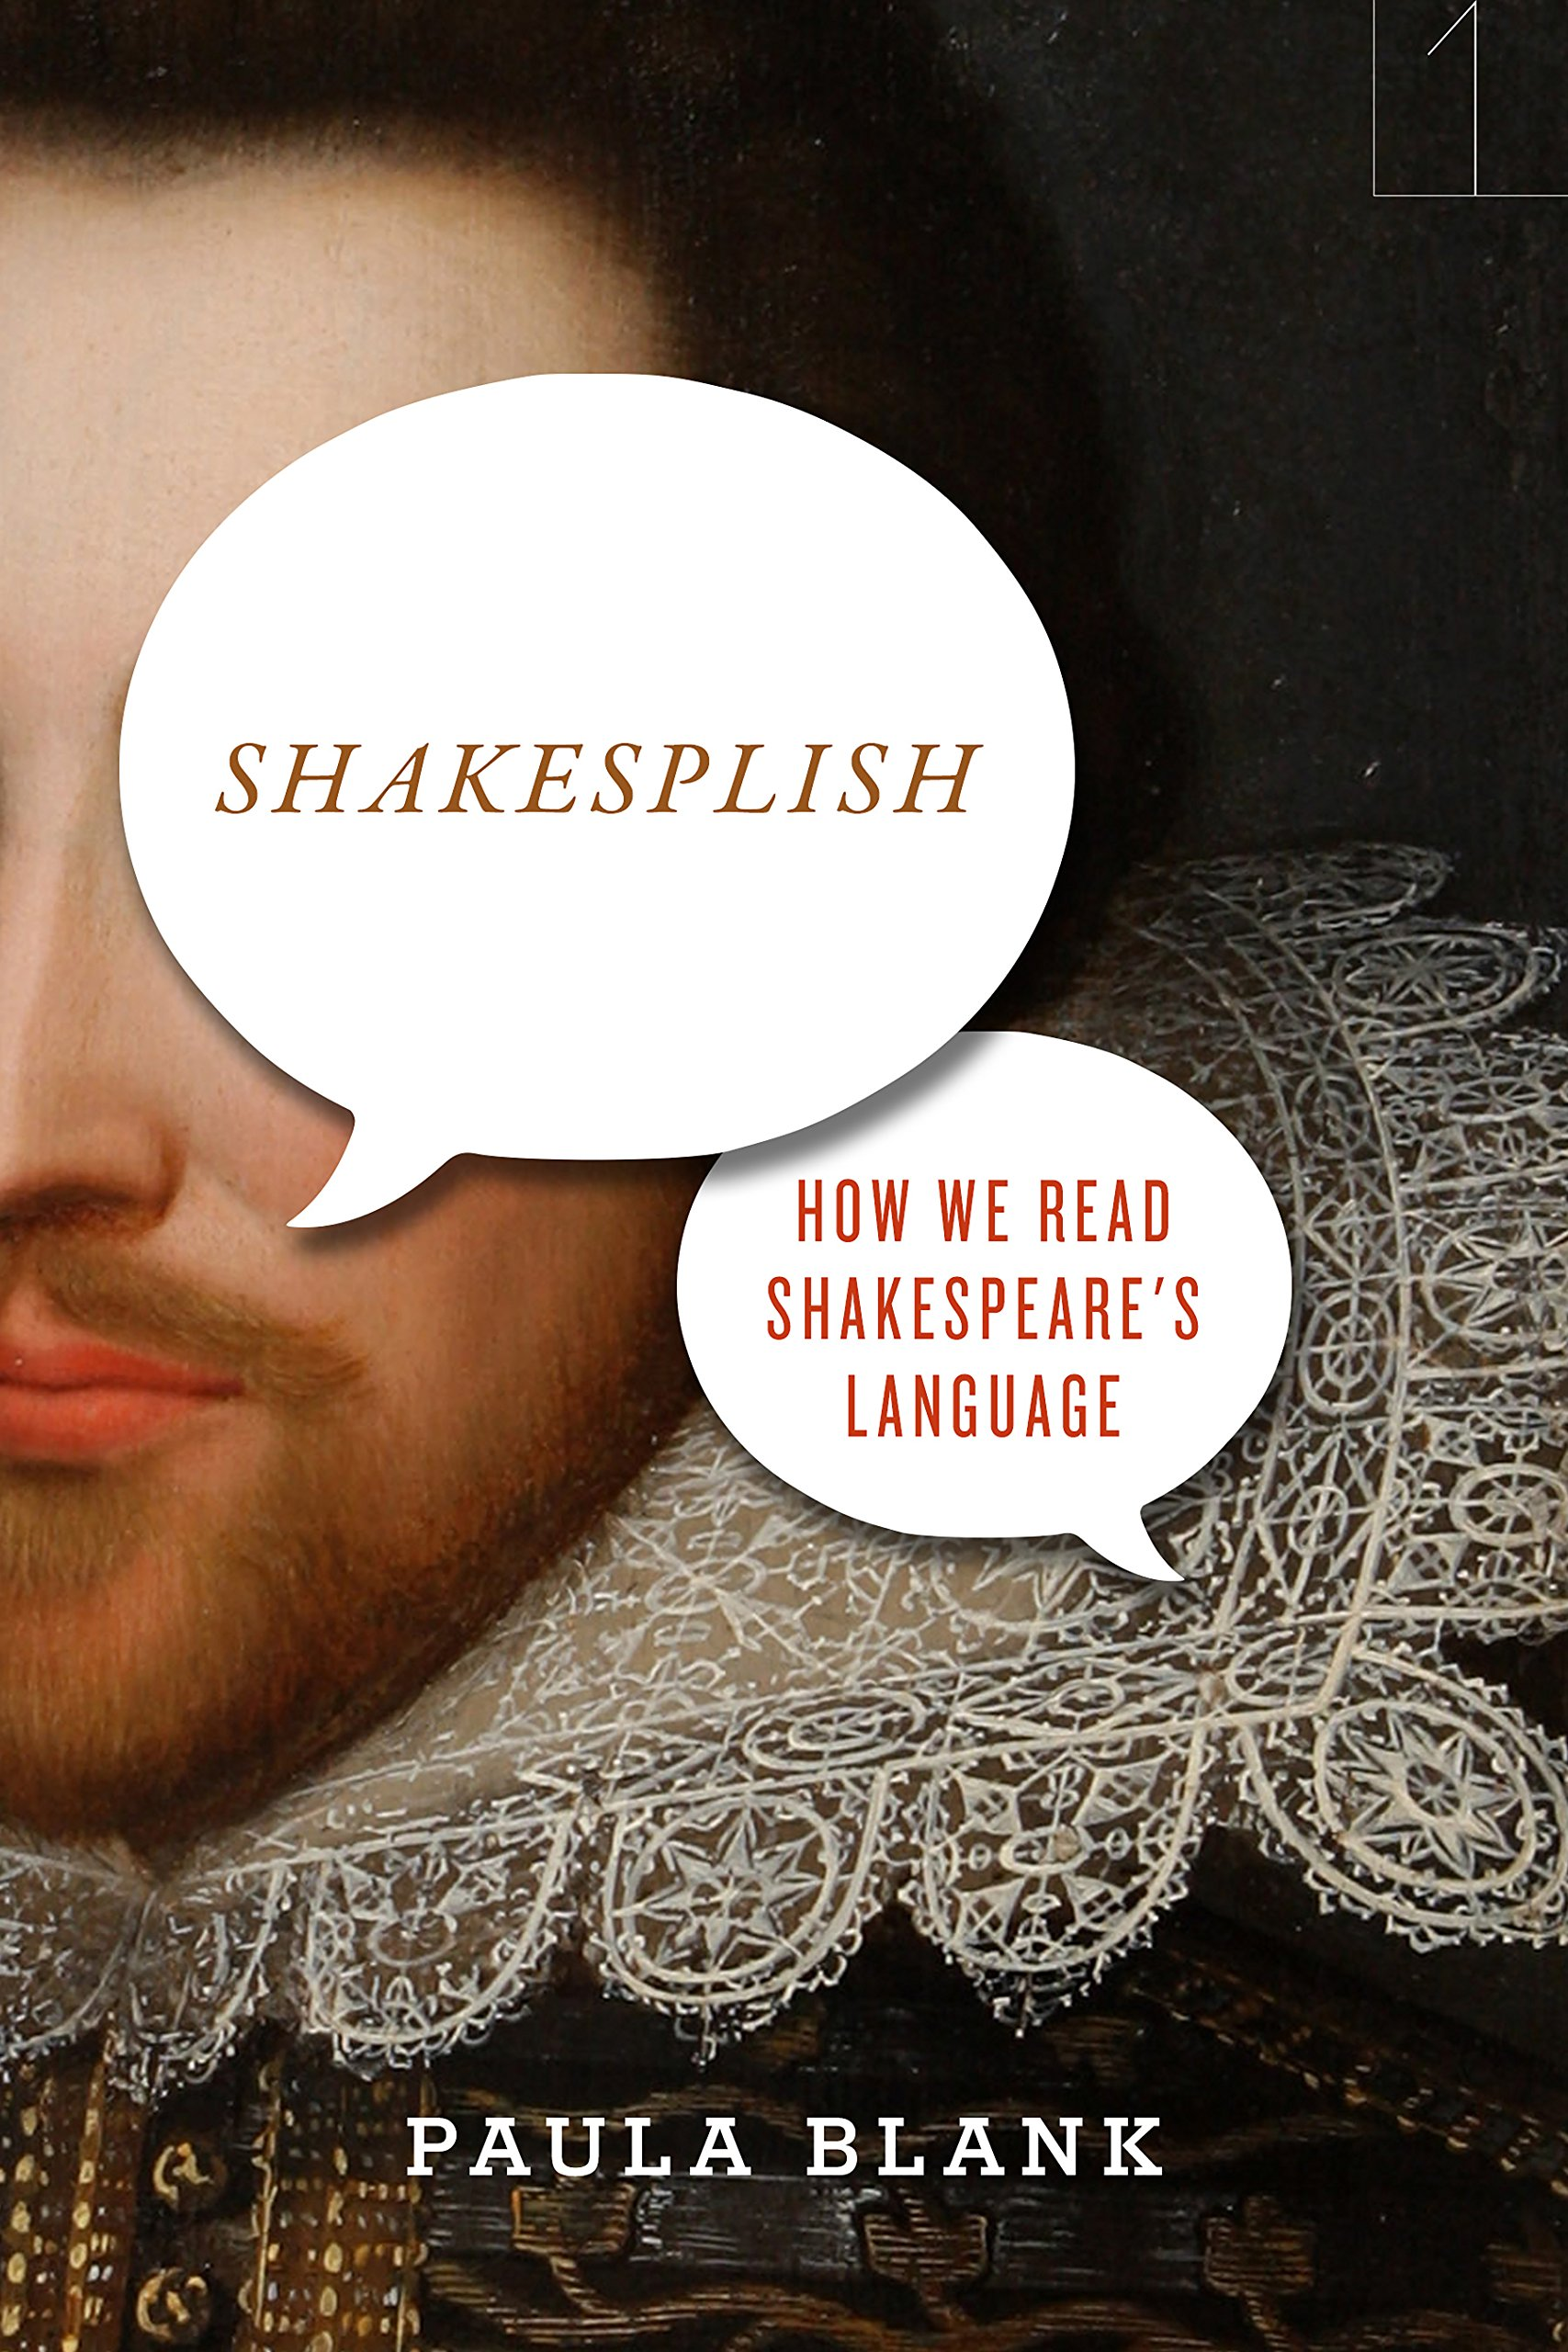 Shakesplish: How We Read Shakespeare's Language (Square One: First-Order Questions in the Humanities) by Stanford University Press